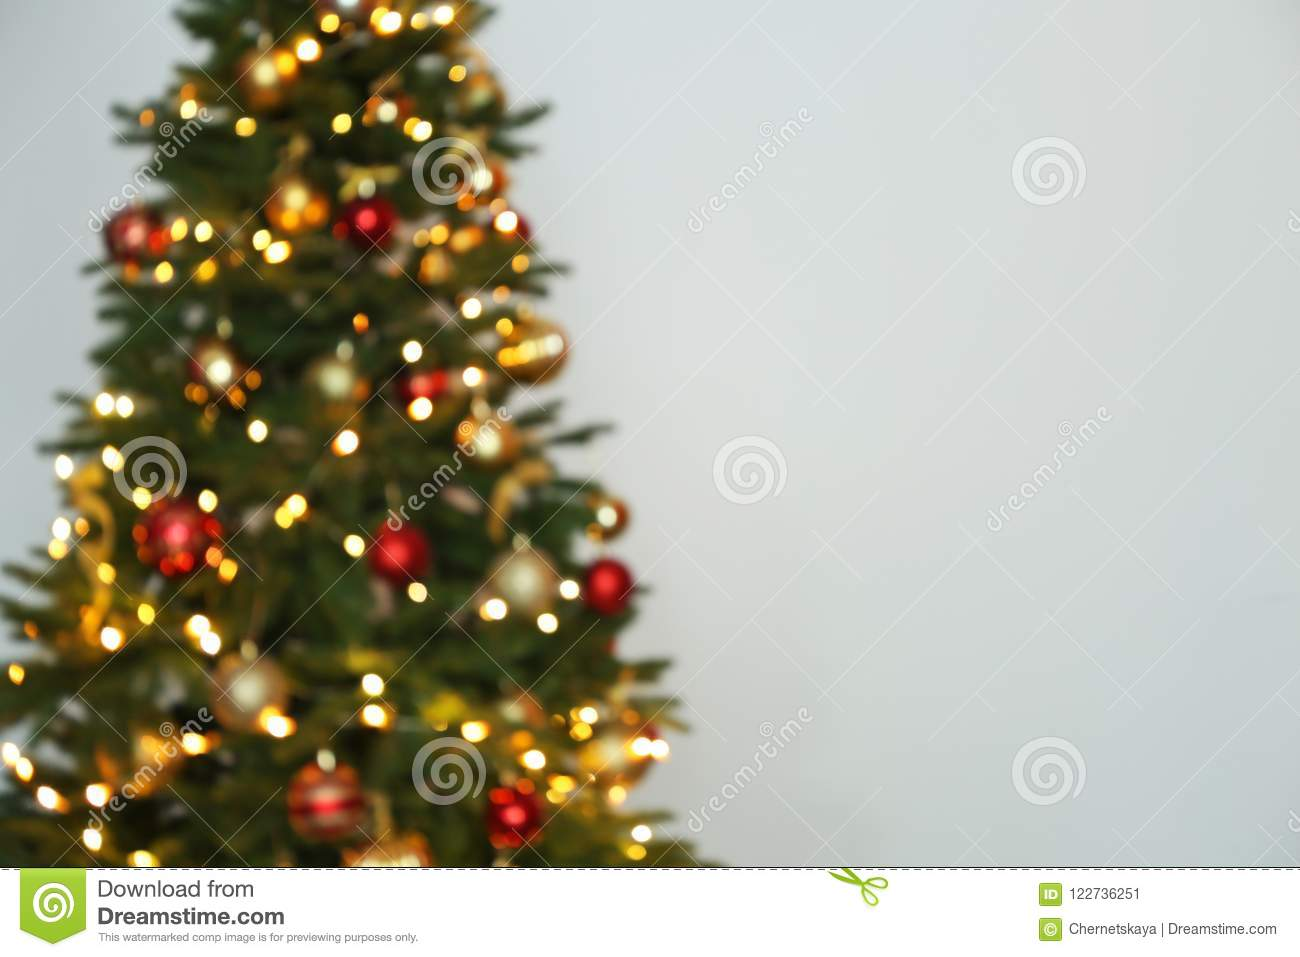 download blurred view of christmas tree with fairy lights stock image image of festive